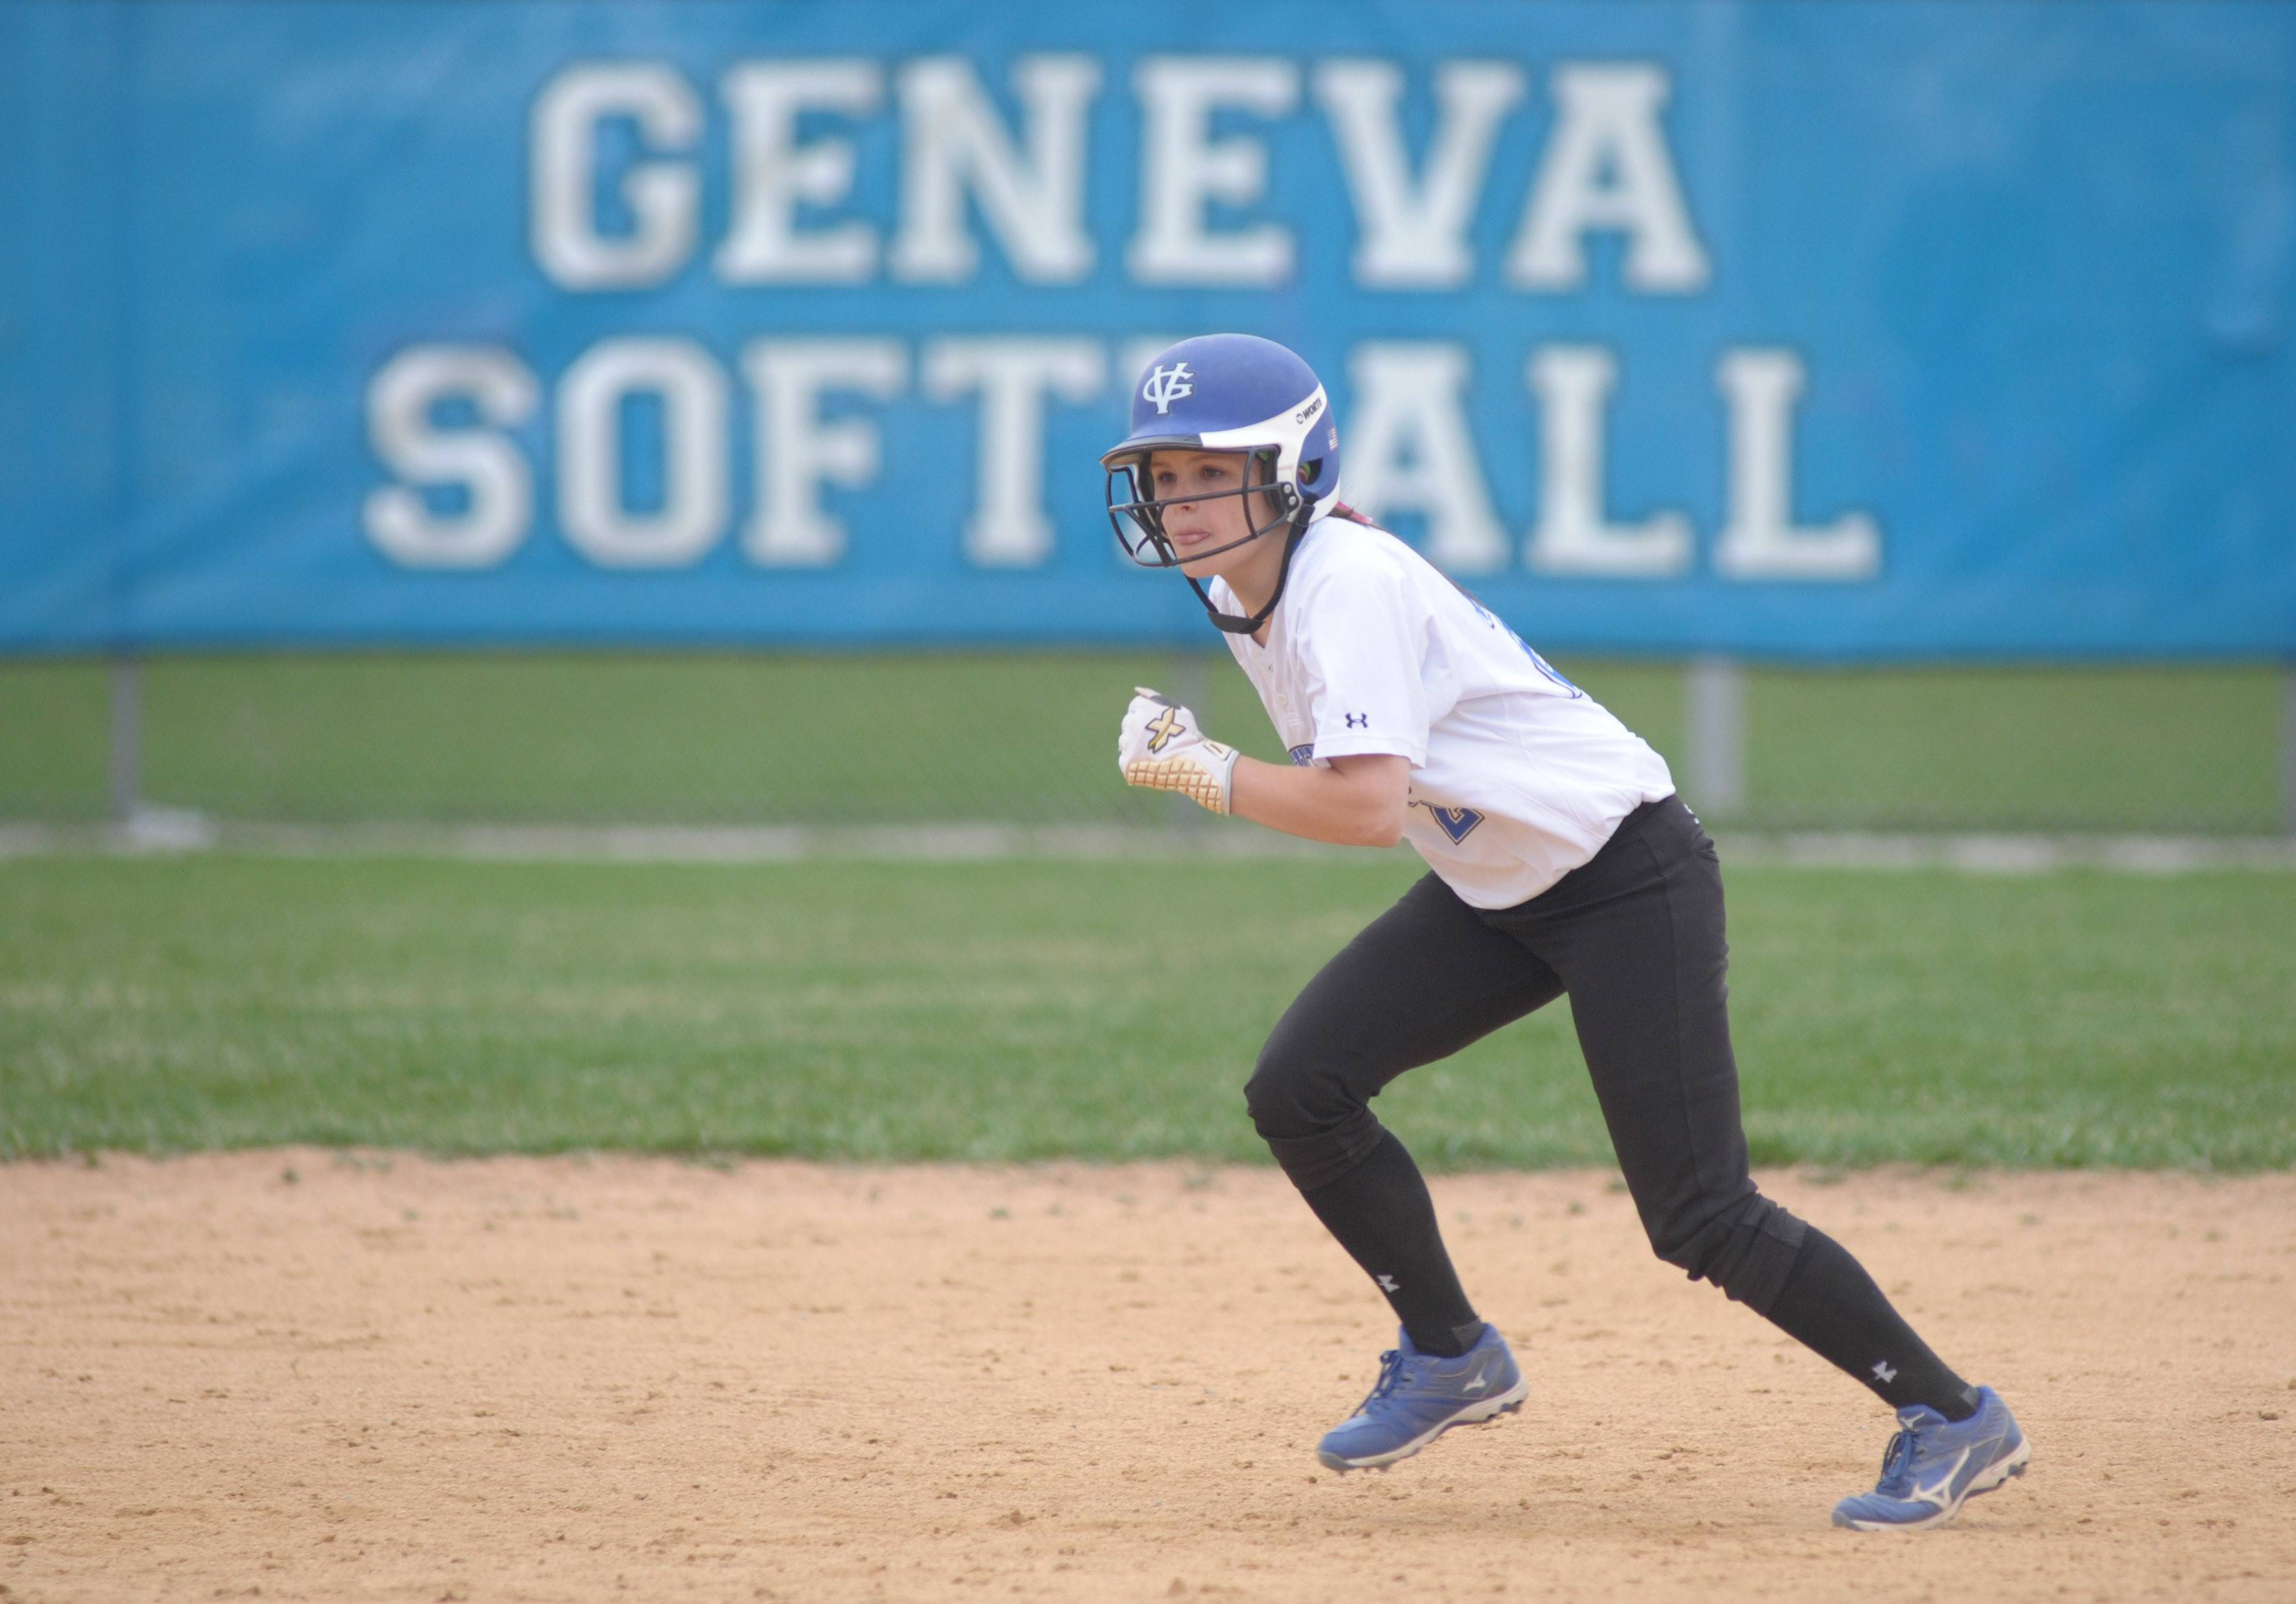 Geneva's McKenna Schimmel heads for third base in the fourth inning of game vs. Batavia on Wednesday, April 23.